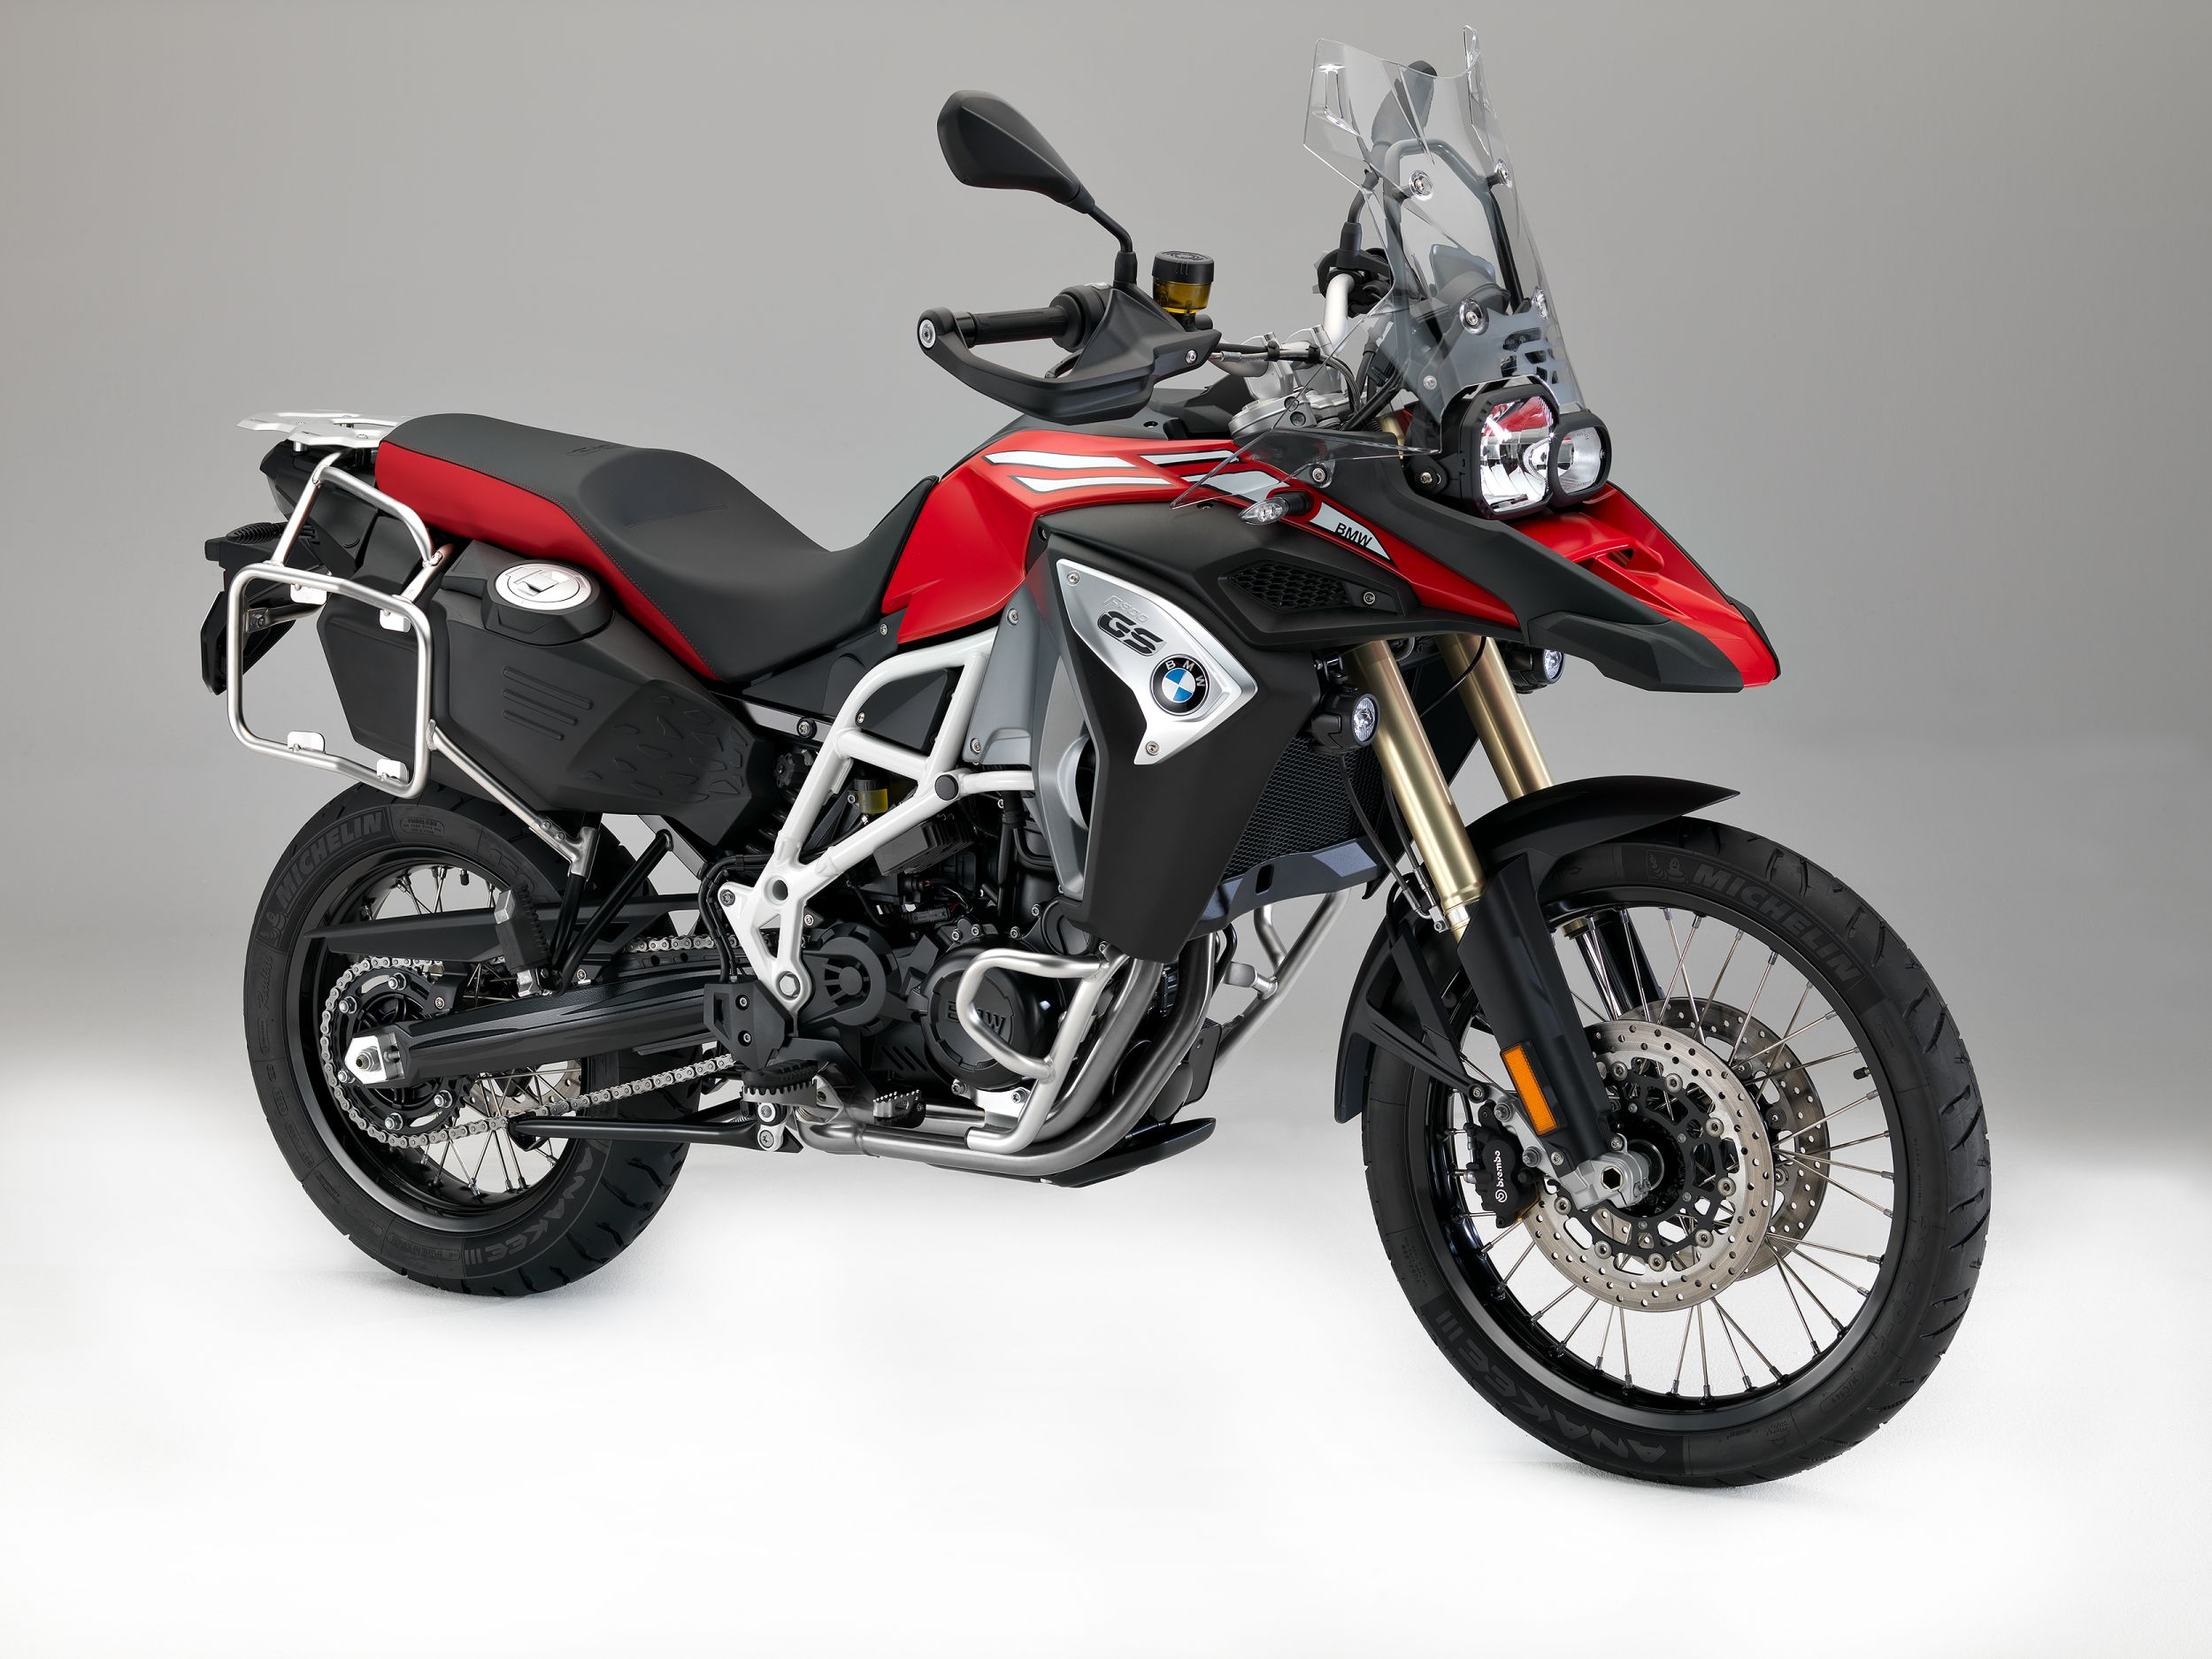 gebrauchte und neue bmw f 800 gs adventure motorr der kaufen. Black Bedroom Furniture Sets. Home Design Ideas